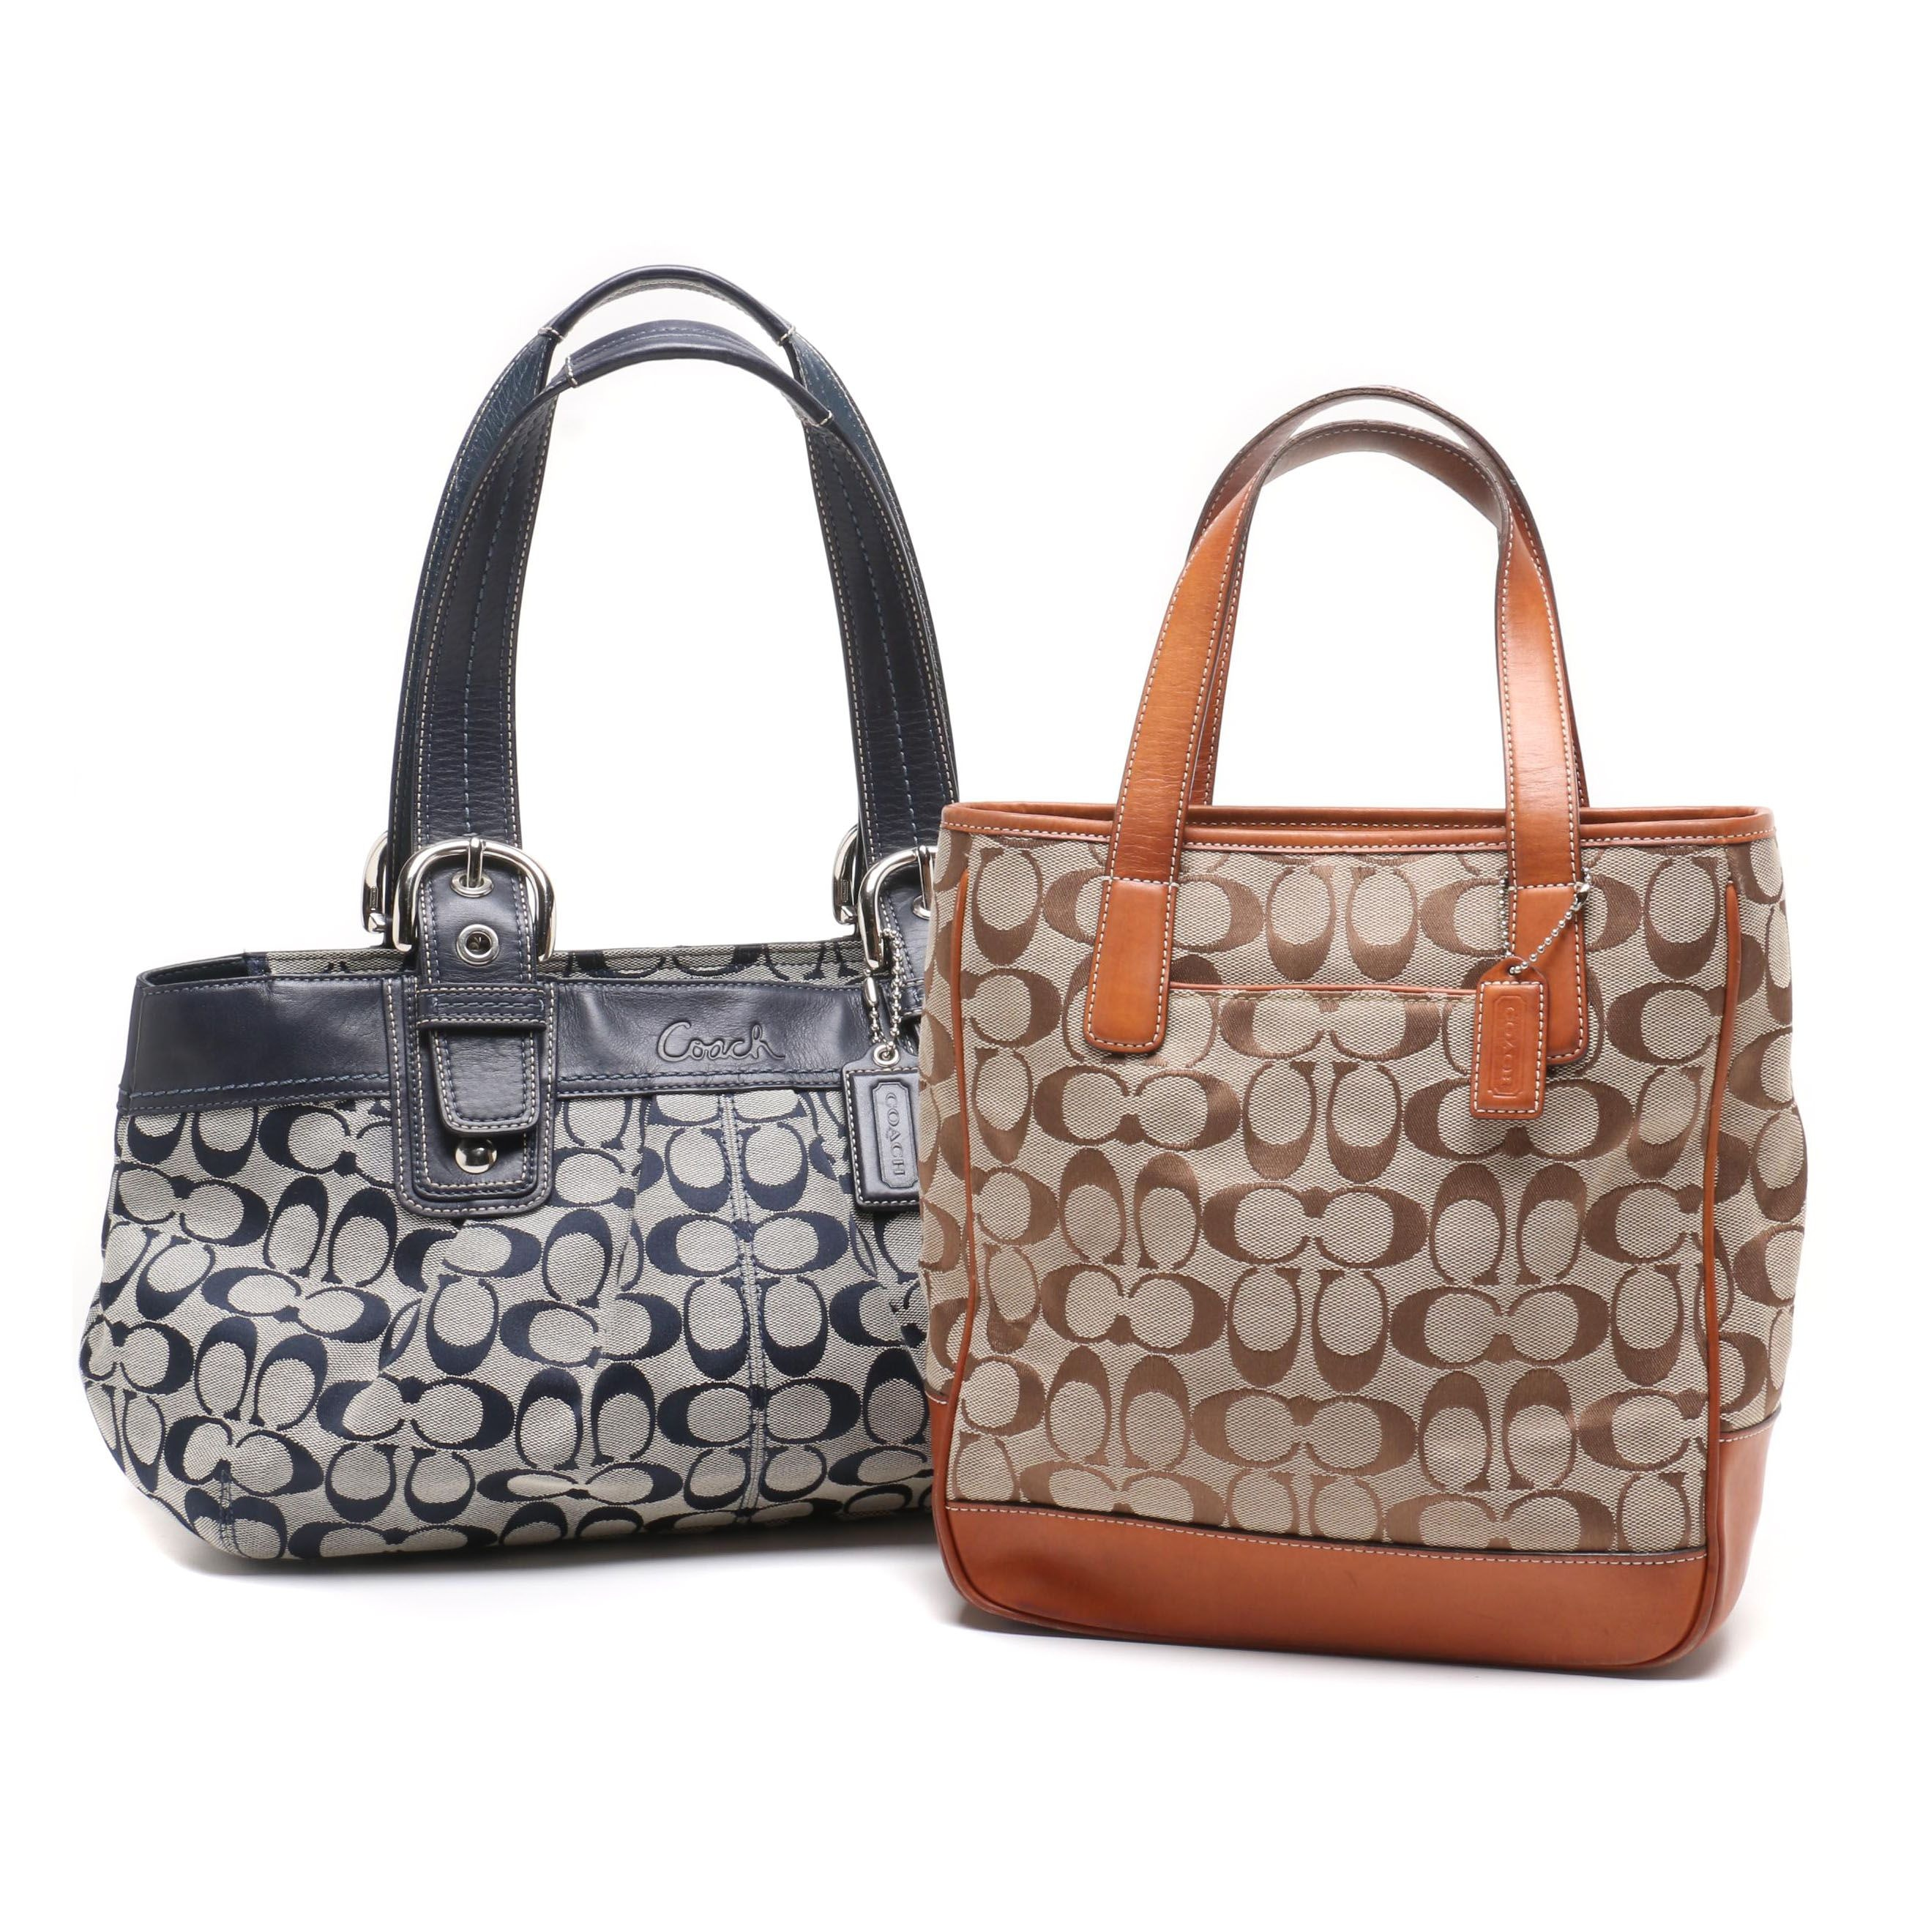 Coach Signature Jacquard and Leather Tote Bags